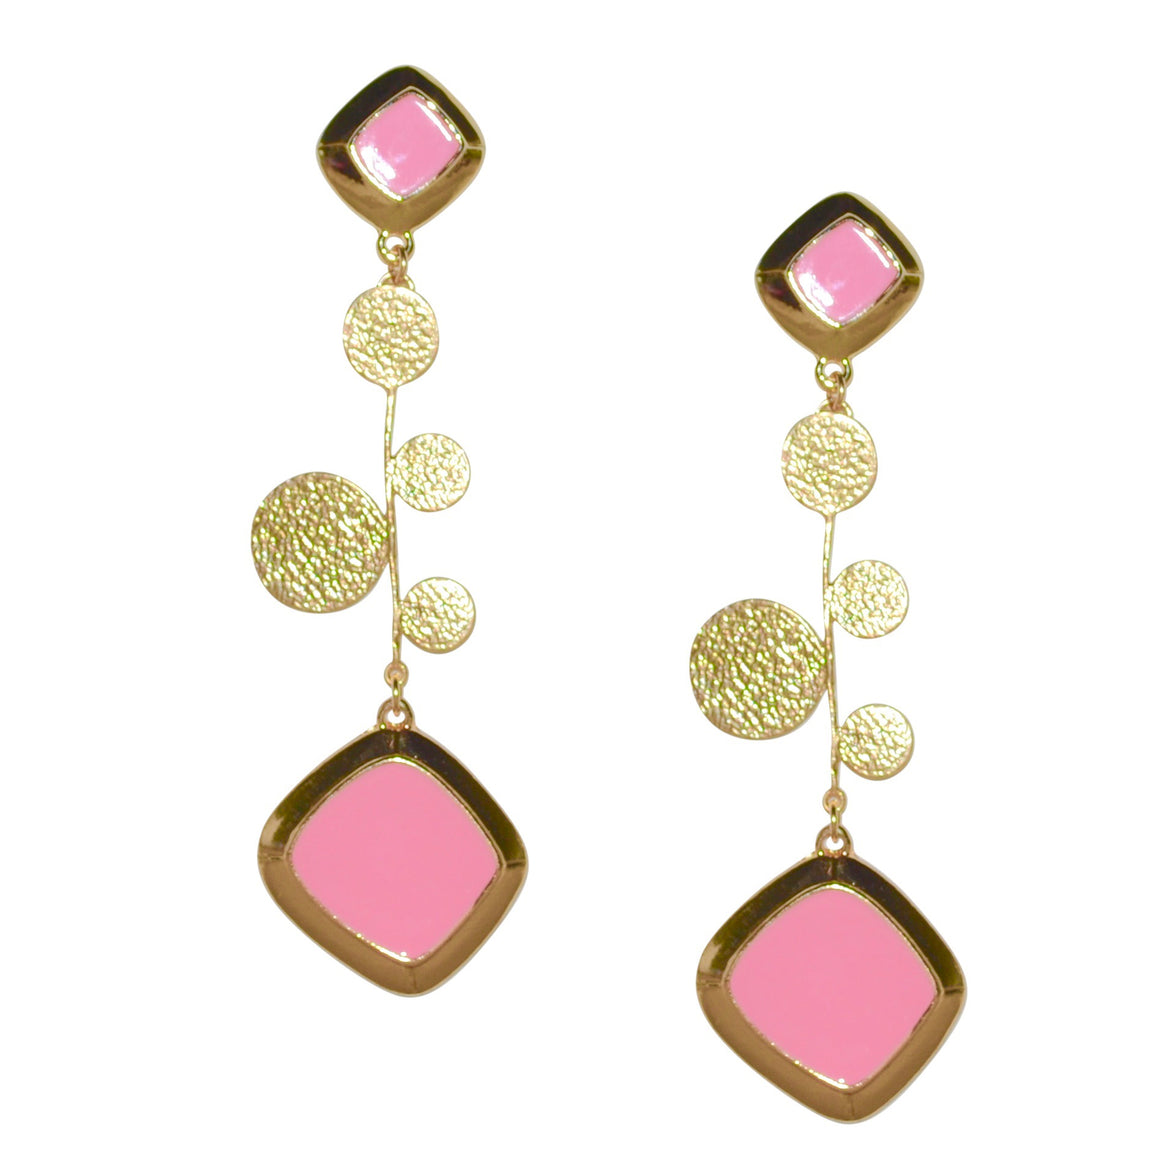 FAXON LONG EARRING IN PINK